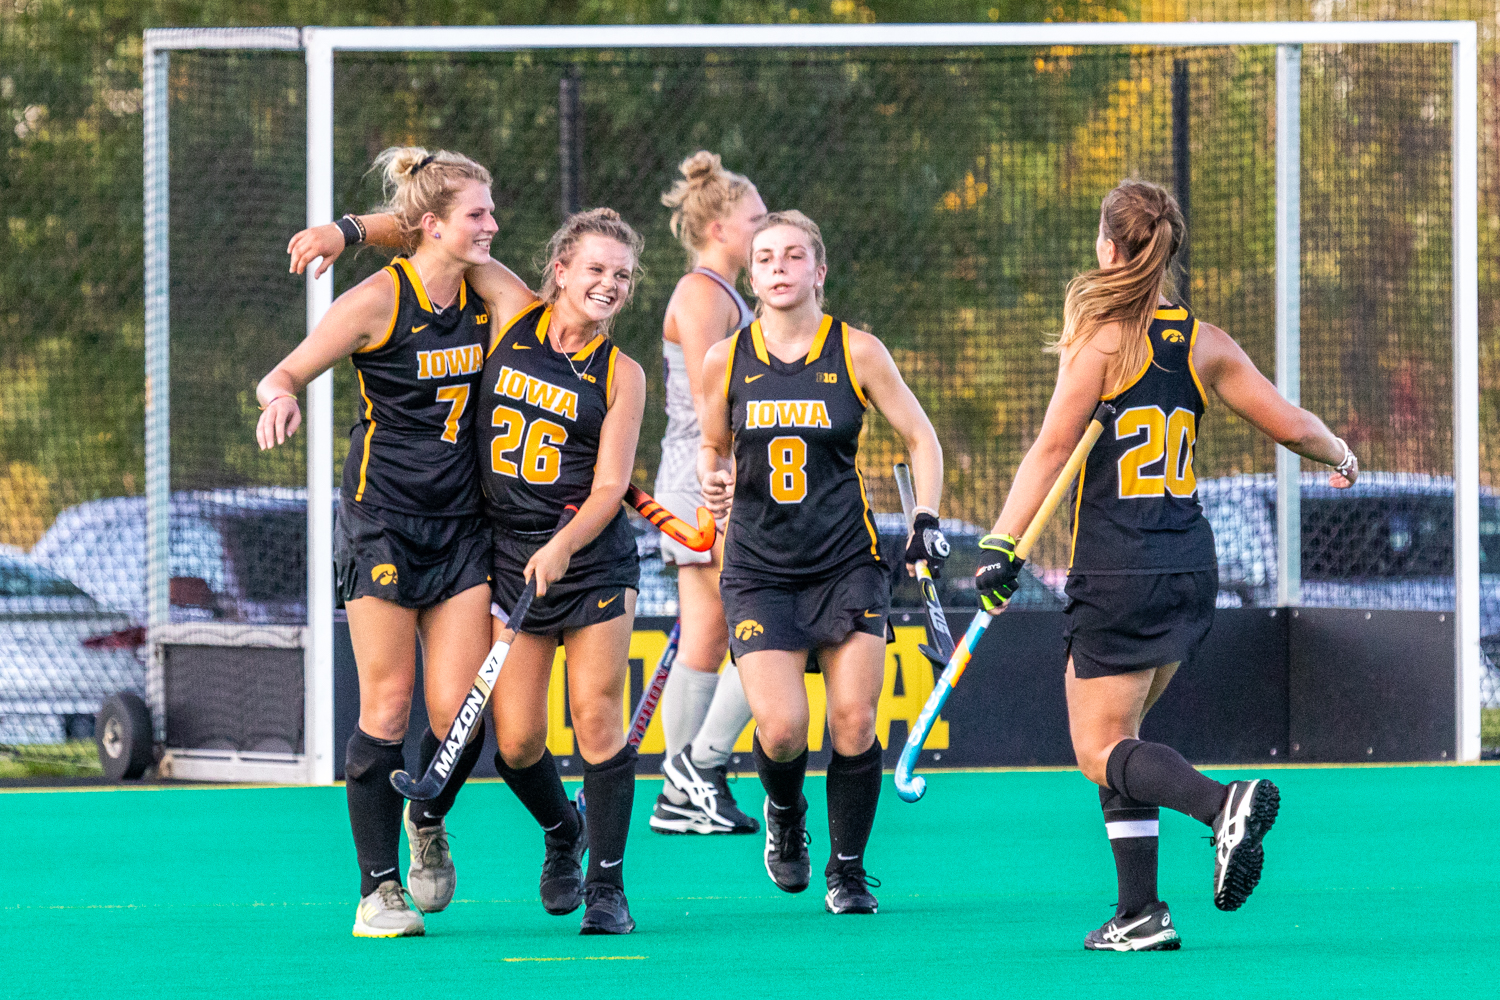 Iowa forward Maddy Murphy celebrates after scoring a goal during a field hockey match against Penn on Friday, Sep. 14, 2018. The Hawkeyes defeated the Quakers, 3-0.